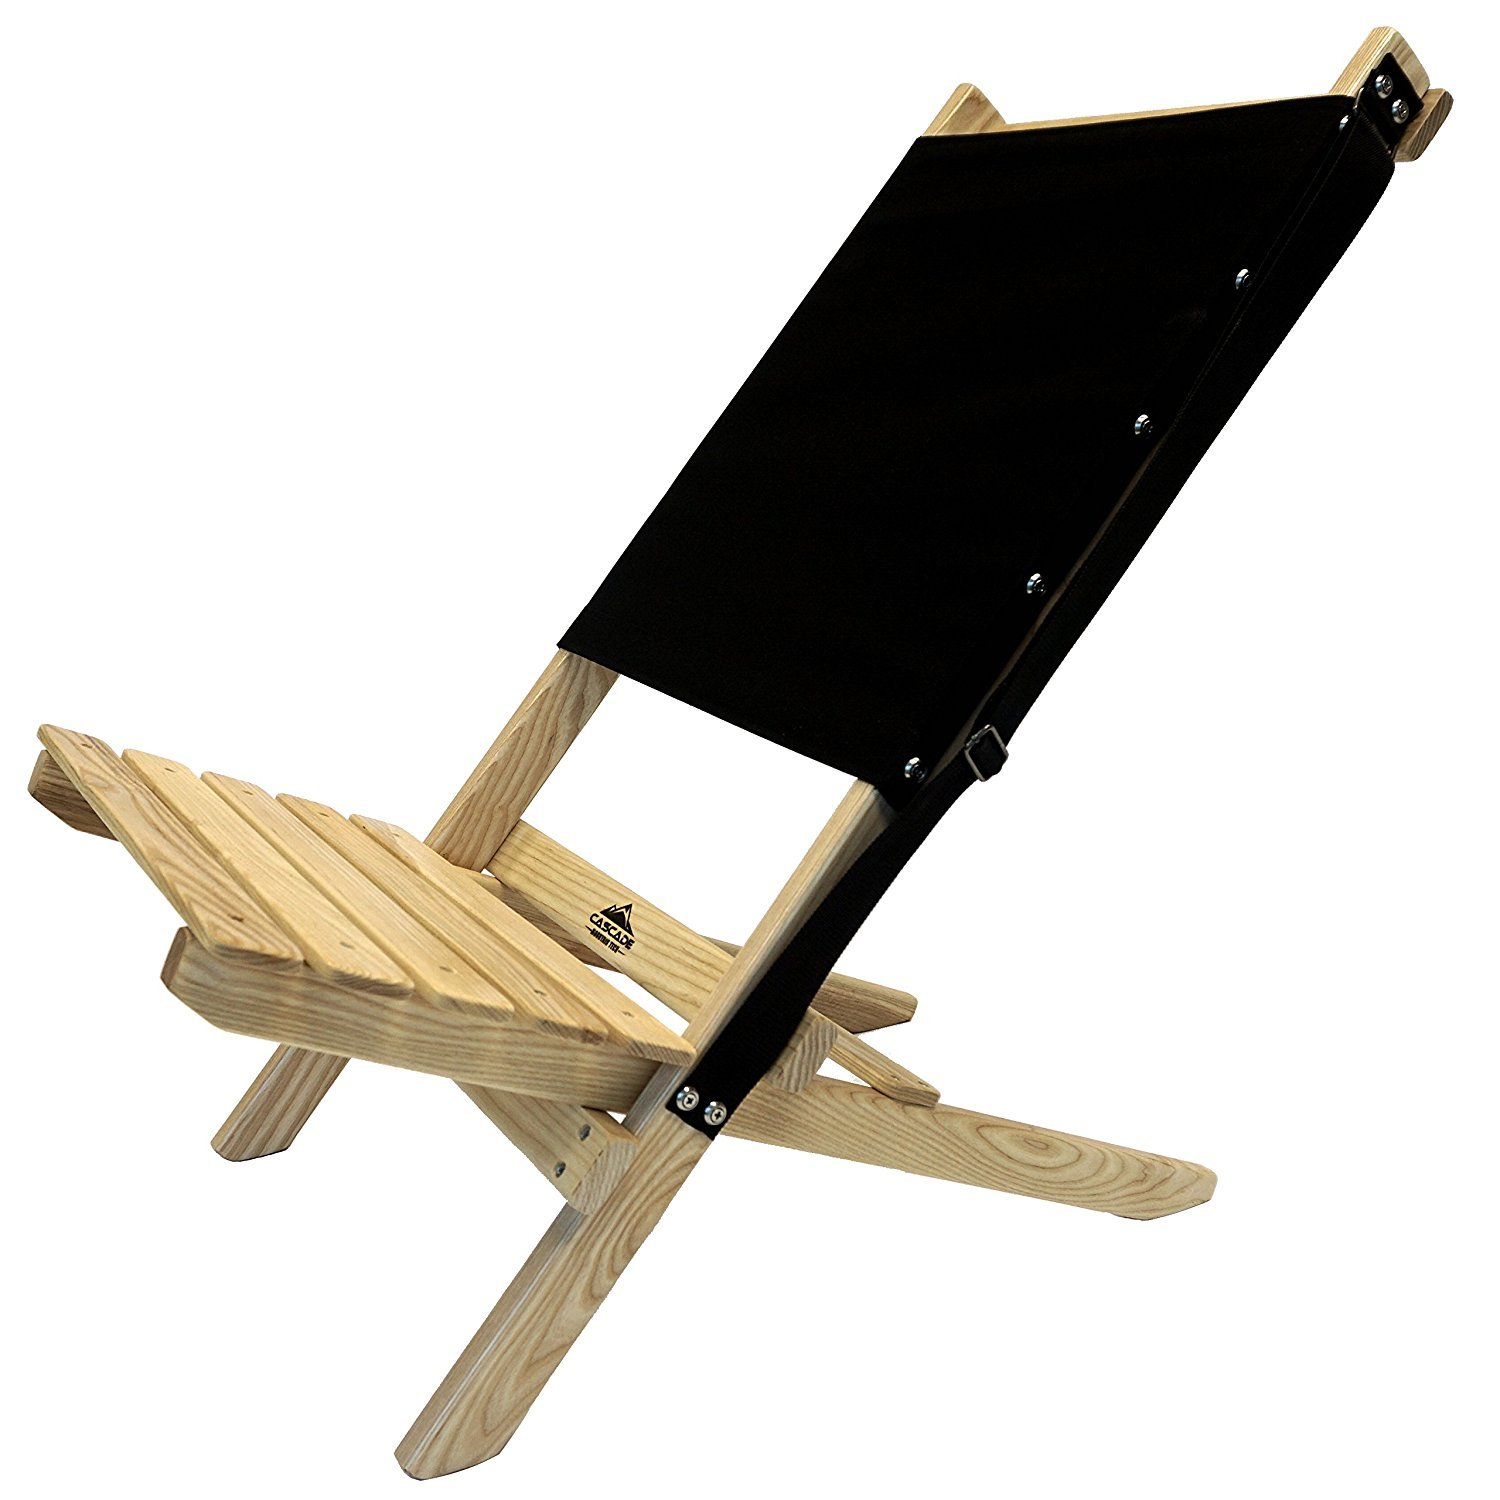 Cascade Mountain Tech Ash Wood Folding Beach Chair with Carry Strap perfect for Deck Patio Lawn and Camping [並行輸入品] B0742FNTBJ